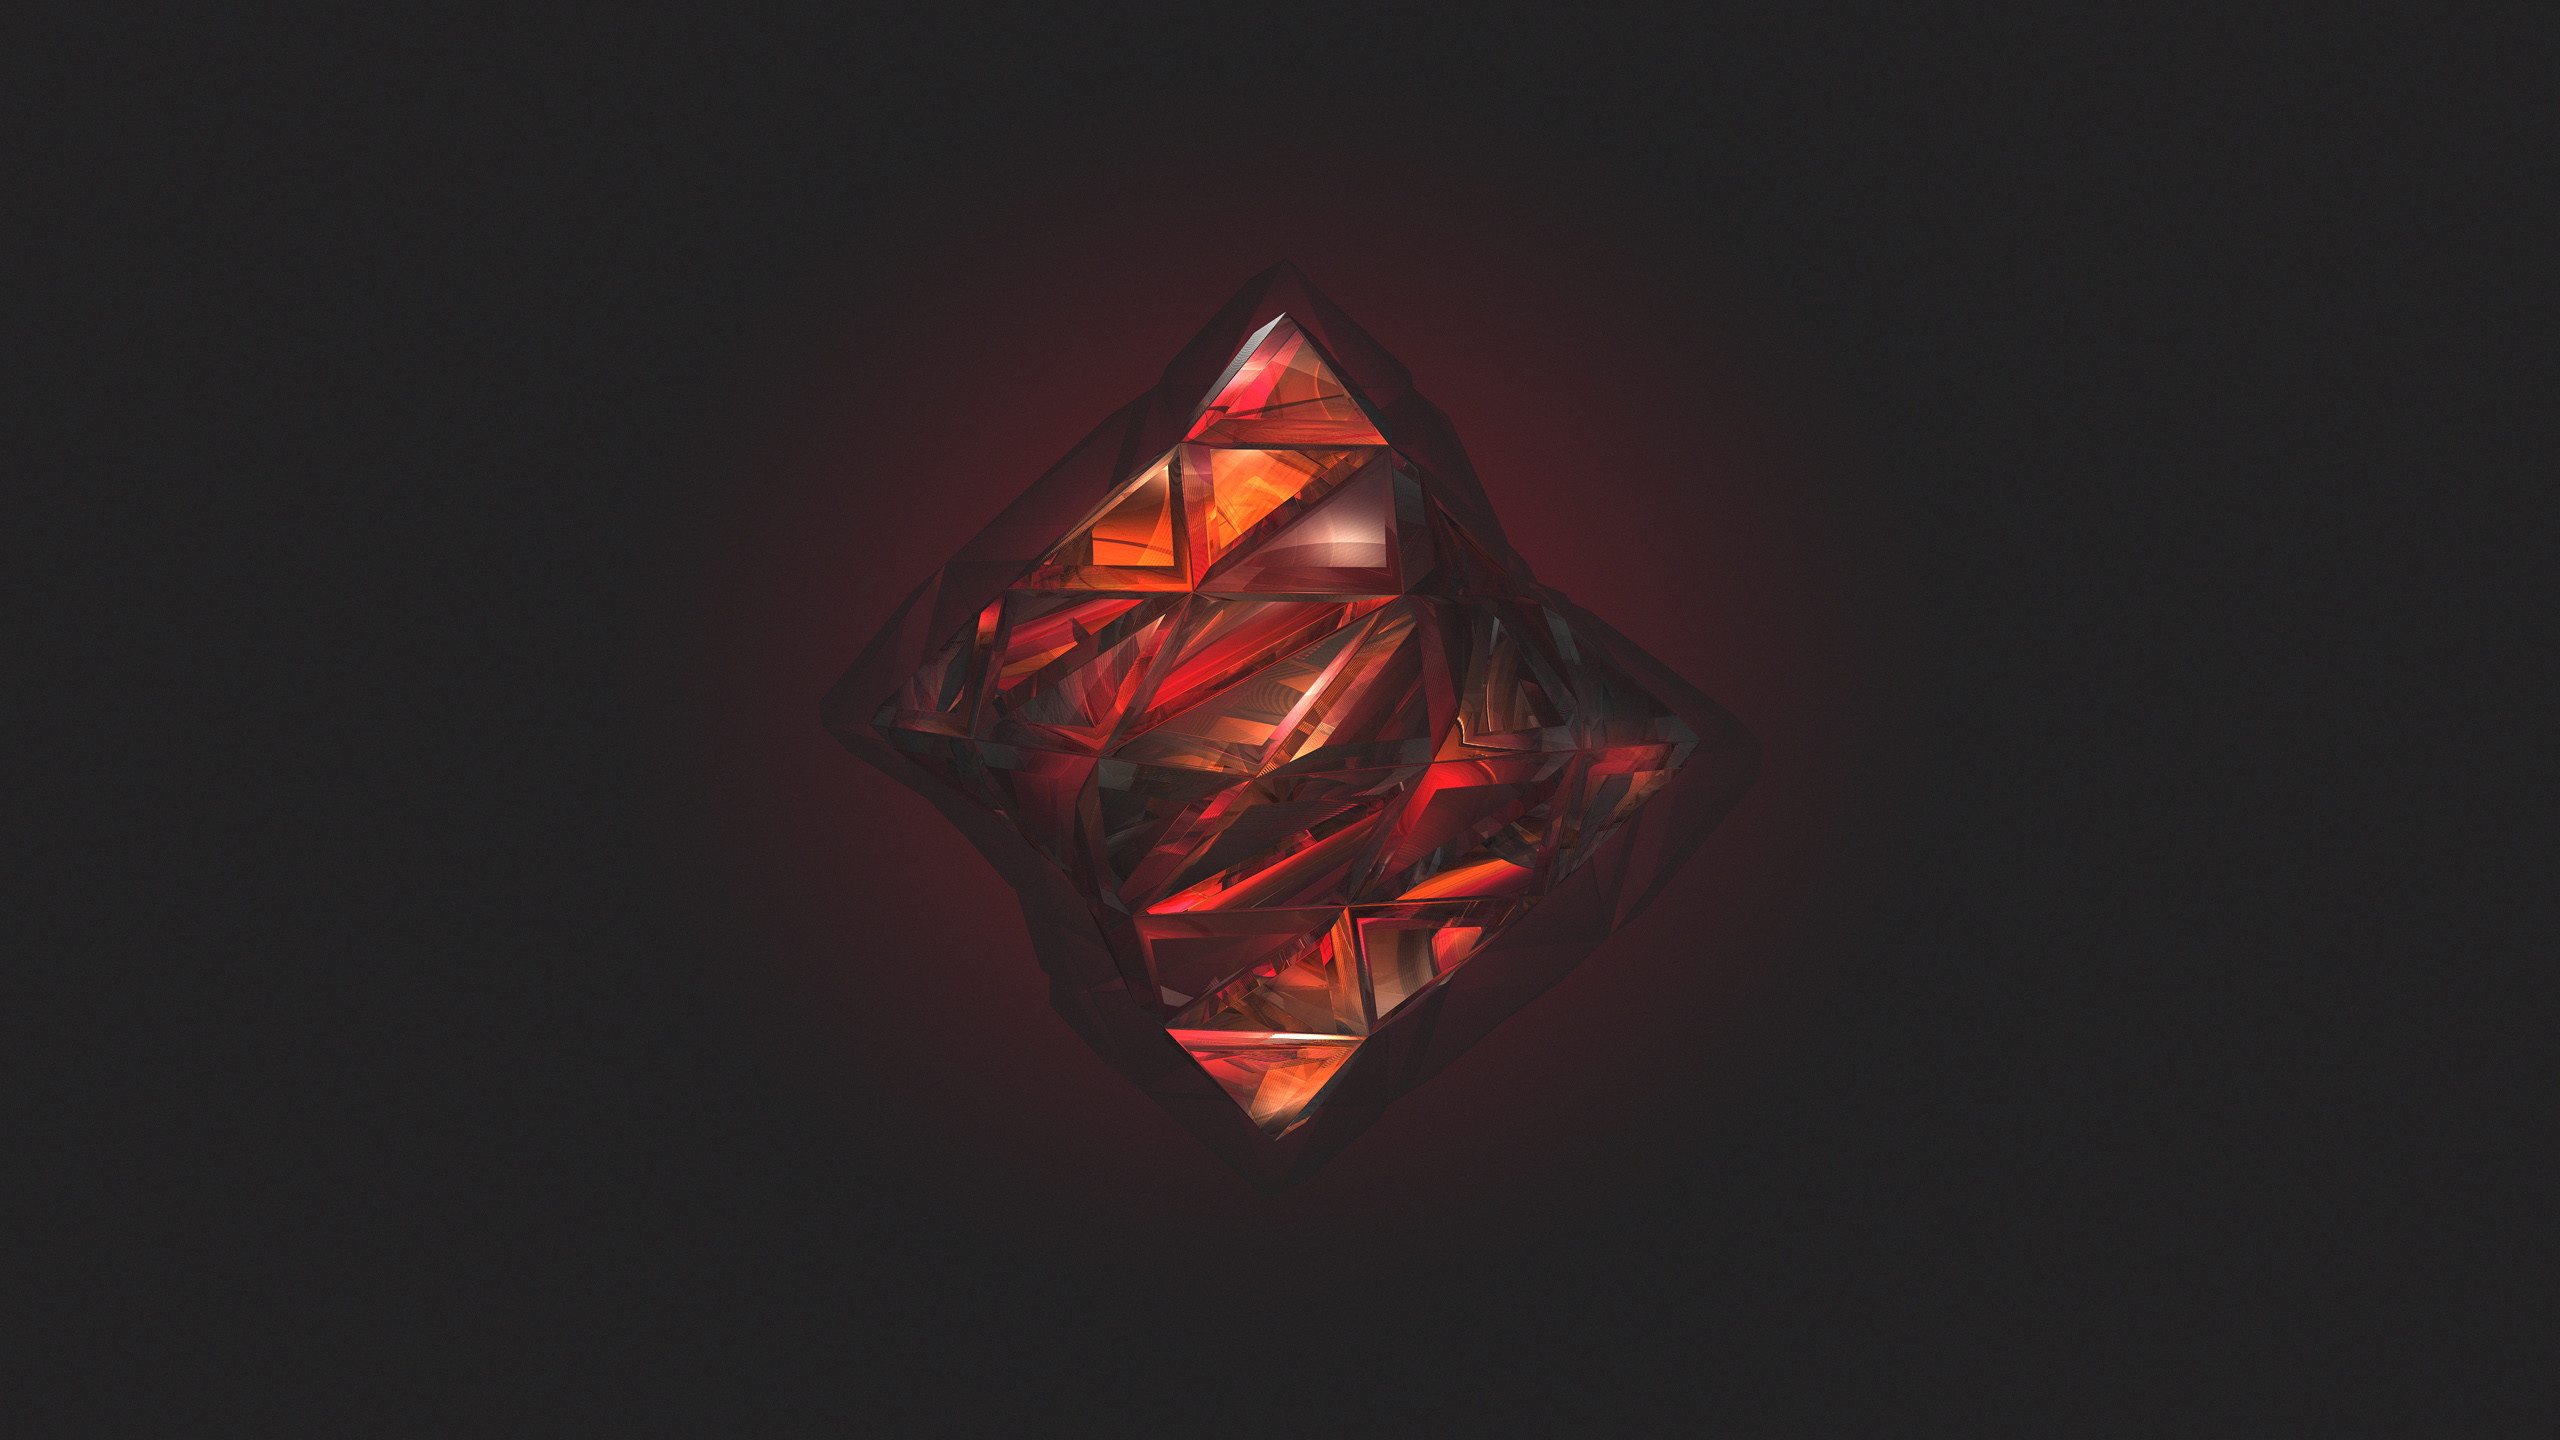 facets | Facets Wallpaper 4k Also link to 1080p wallpaper | Wallpaper |  Pinterest | Wallpaper